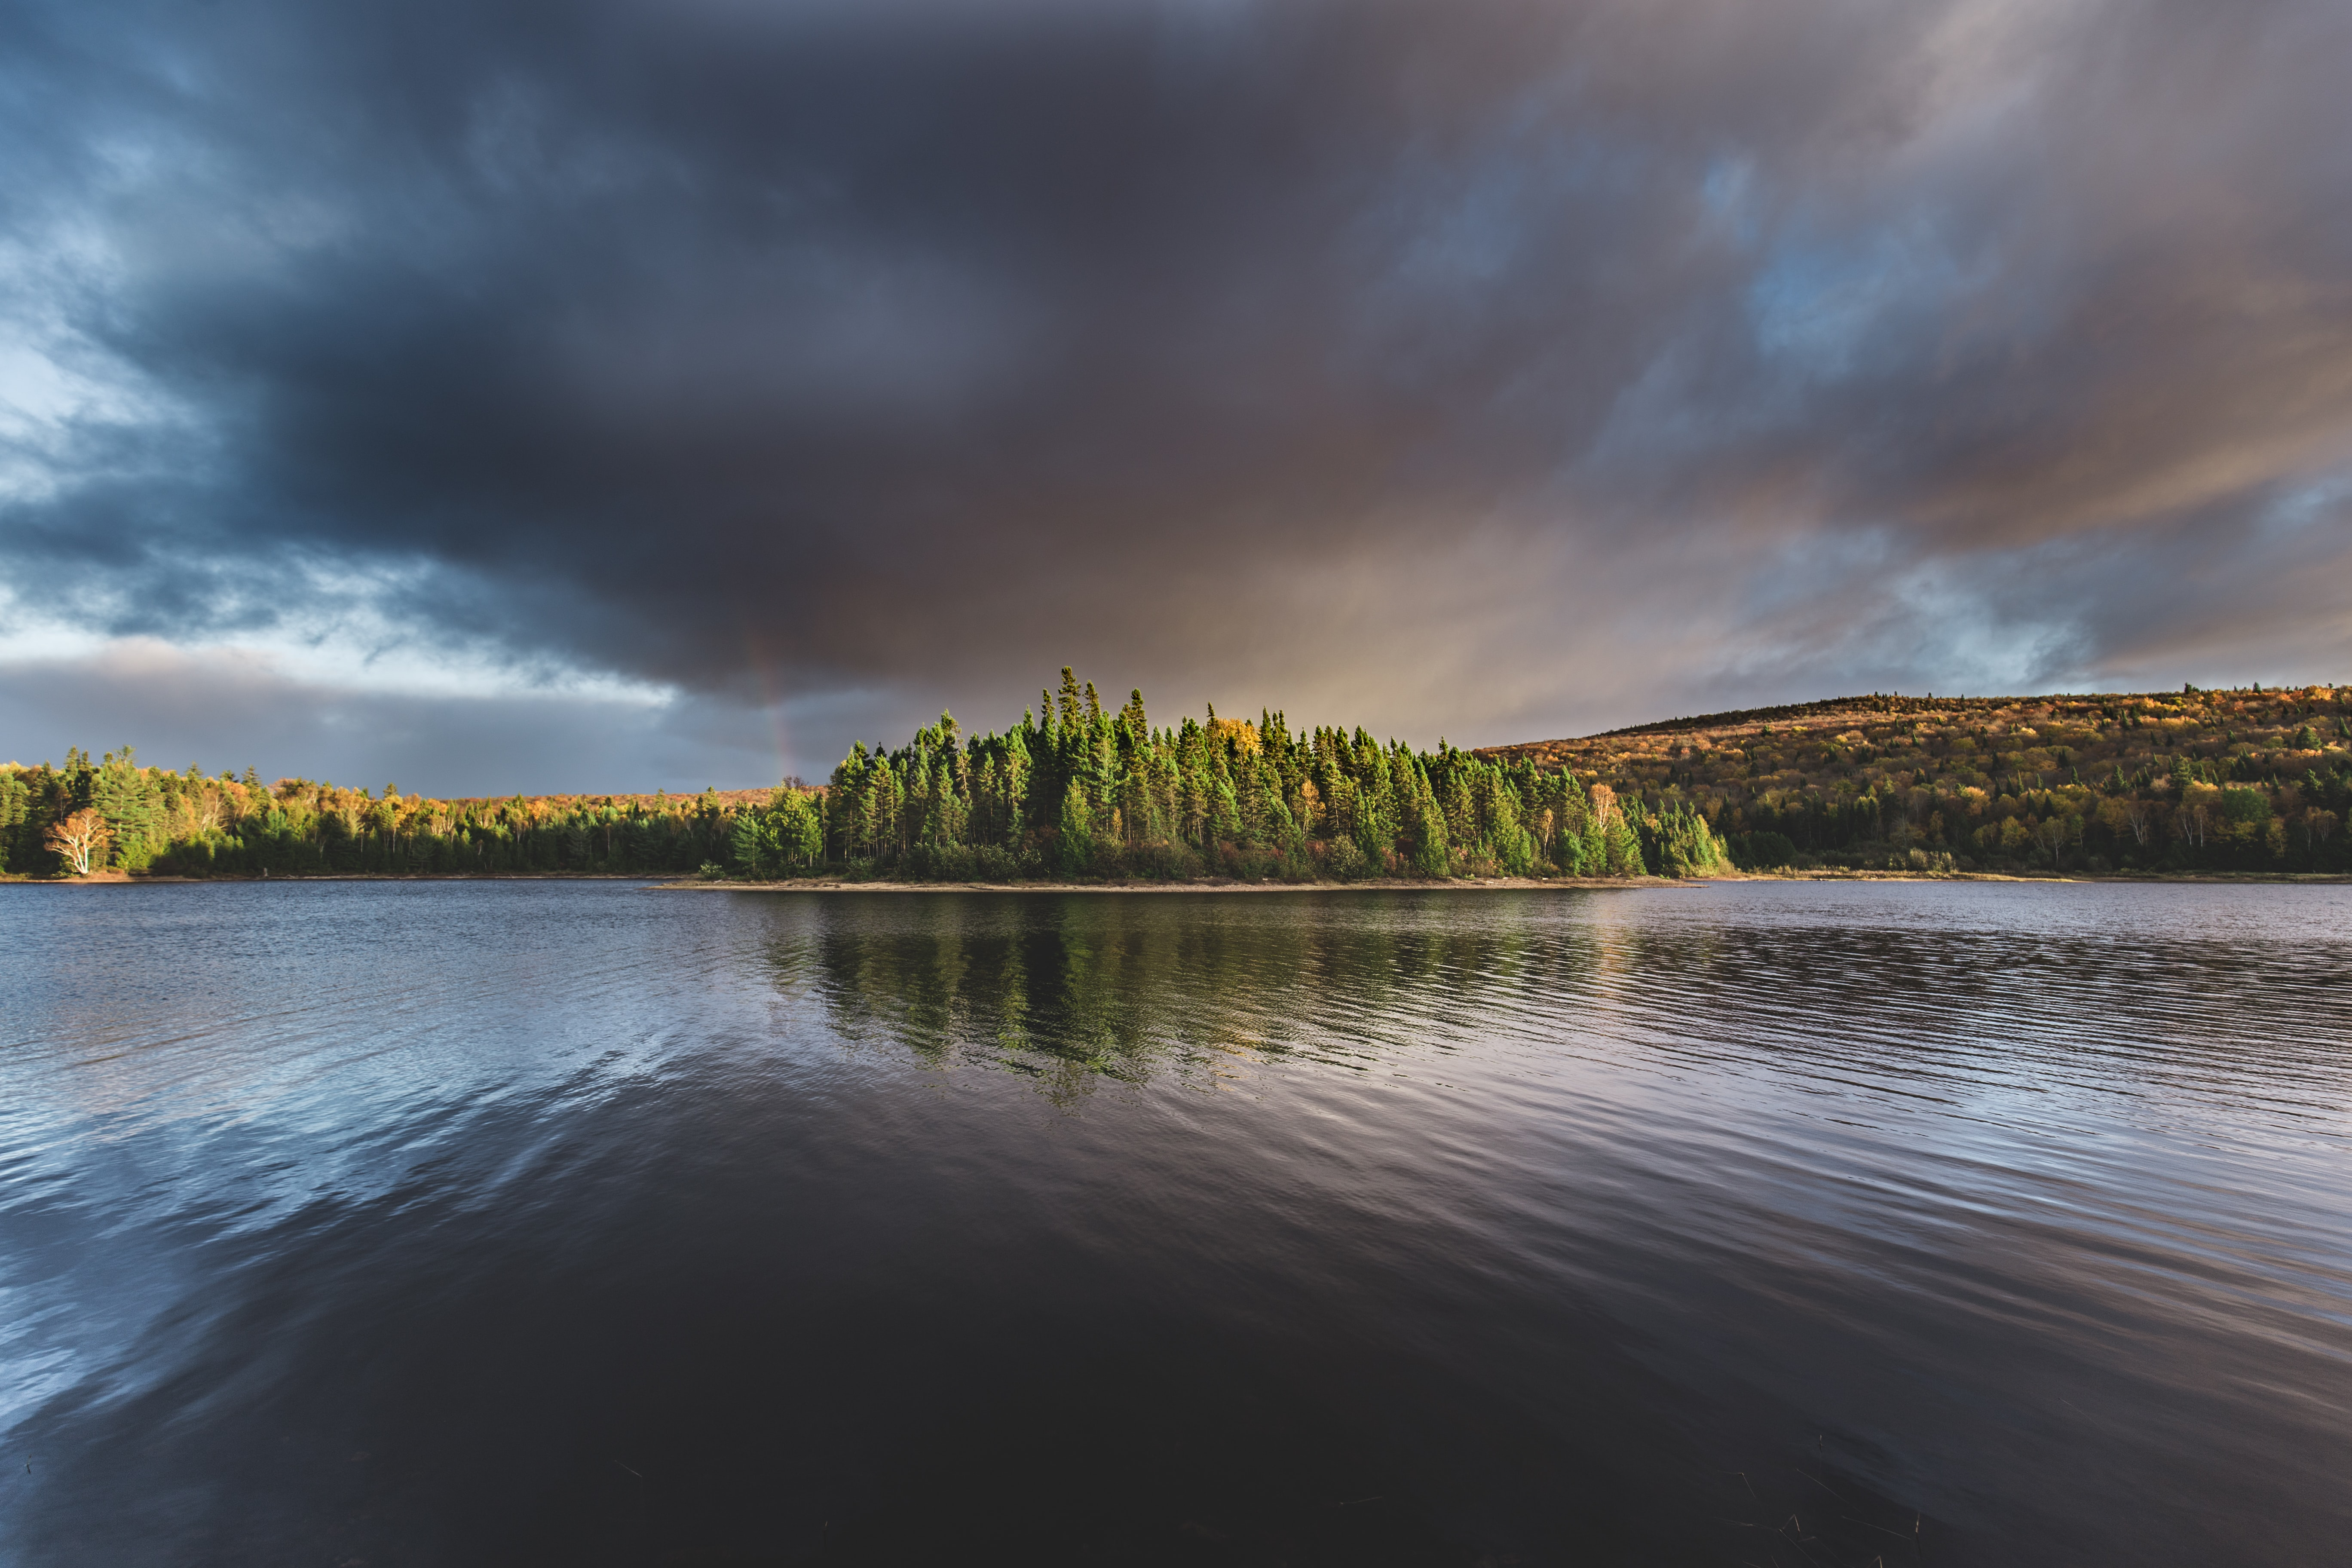 green forest island near calm body of water nature photography